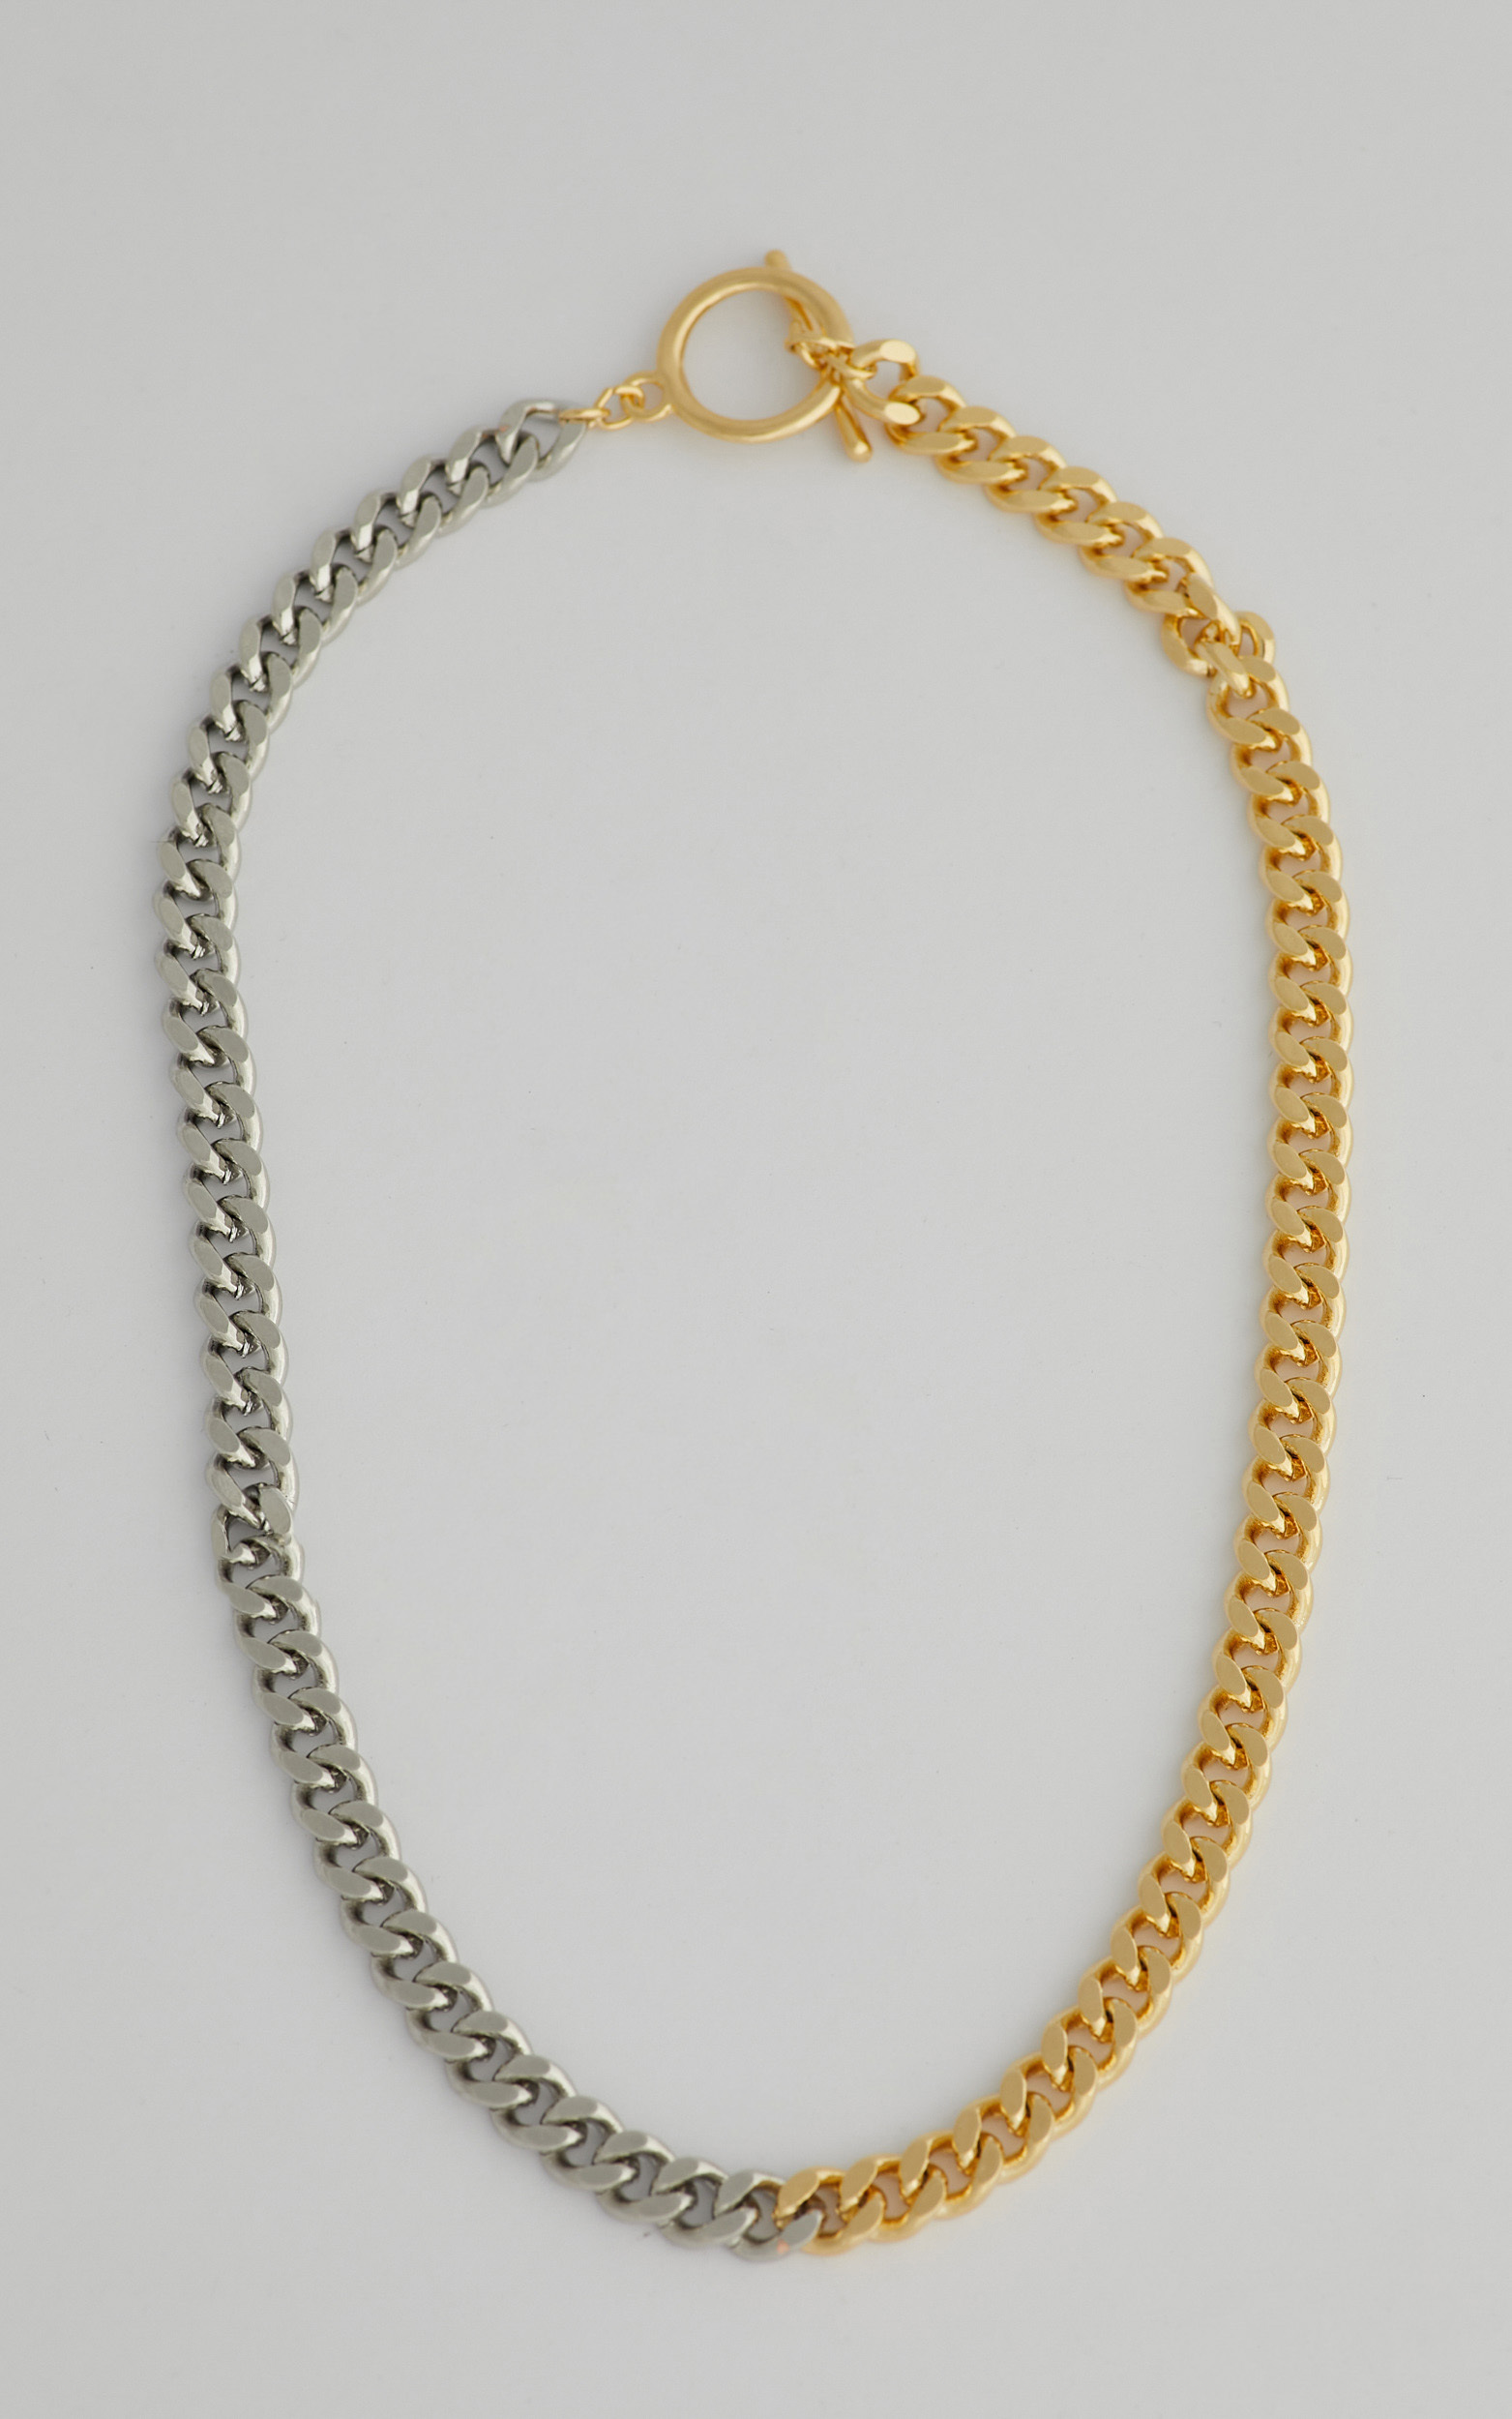 RELIQUIA - NOTO NECKLACE in Gold - NoSize, GLD1, hi-res image number null